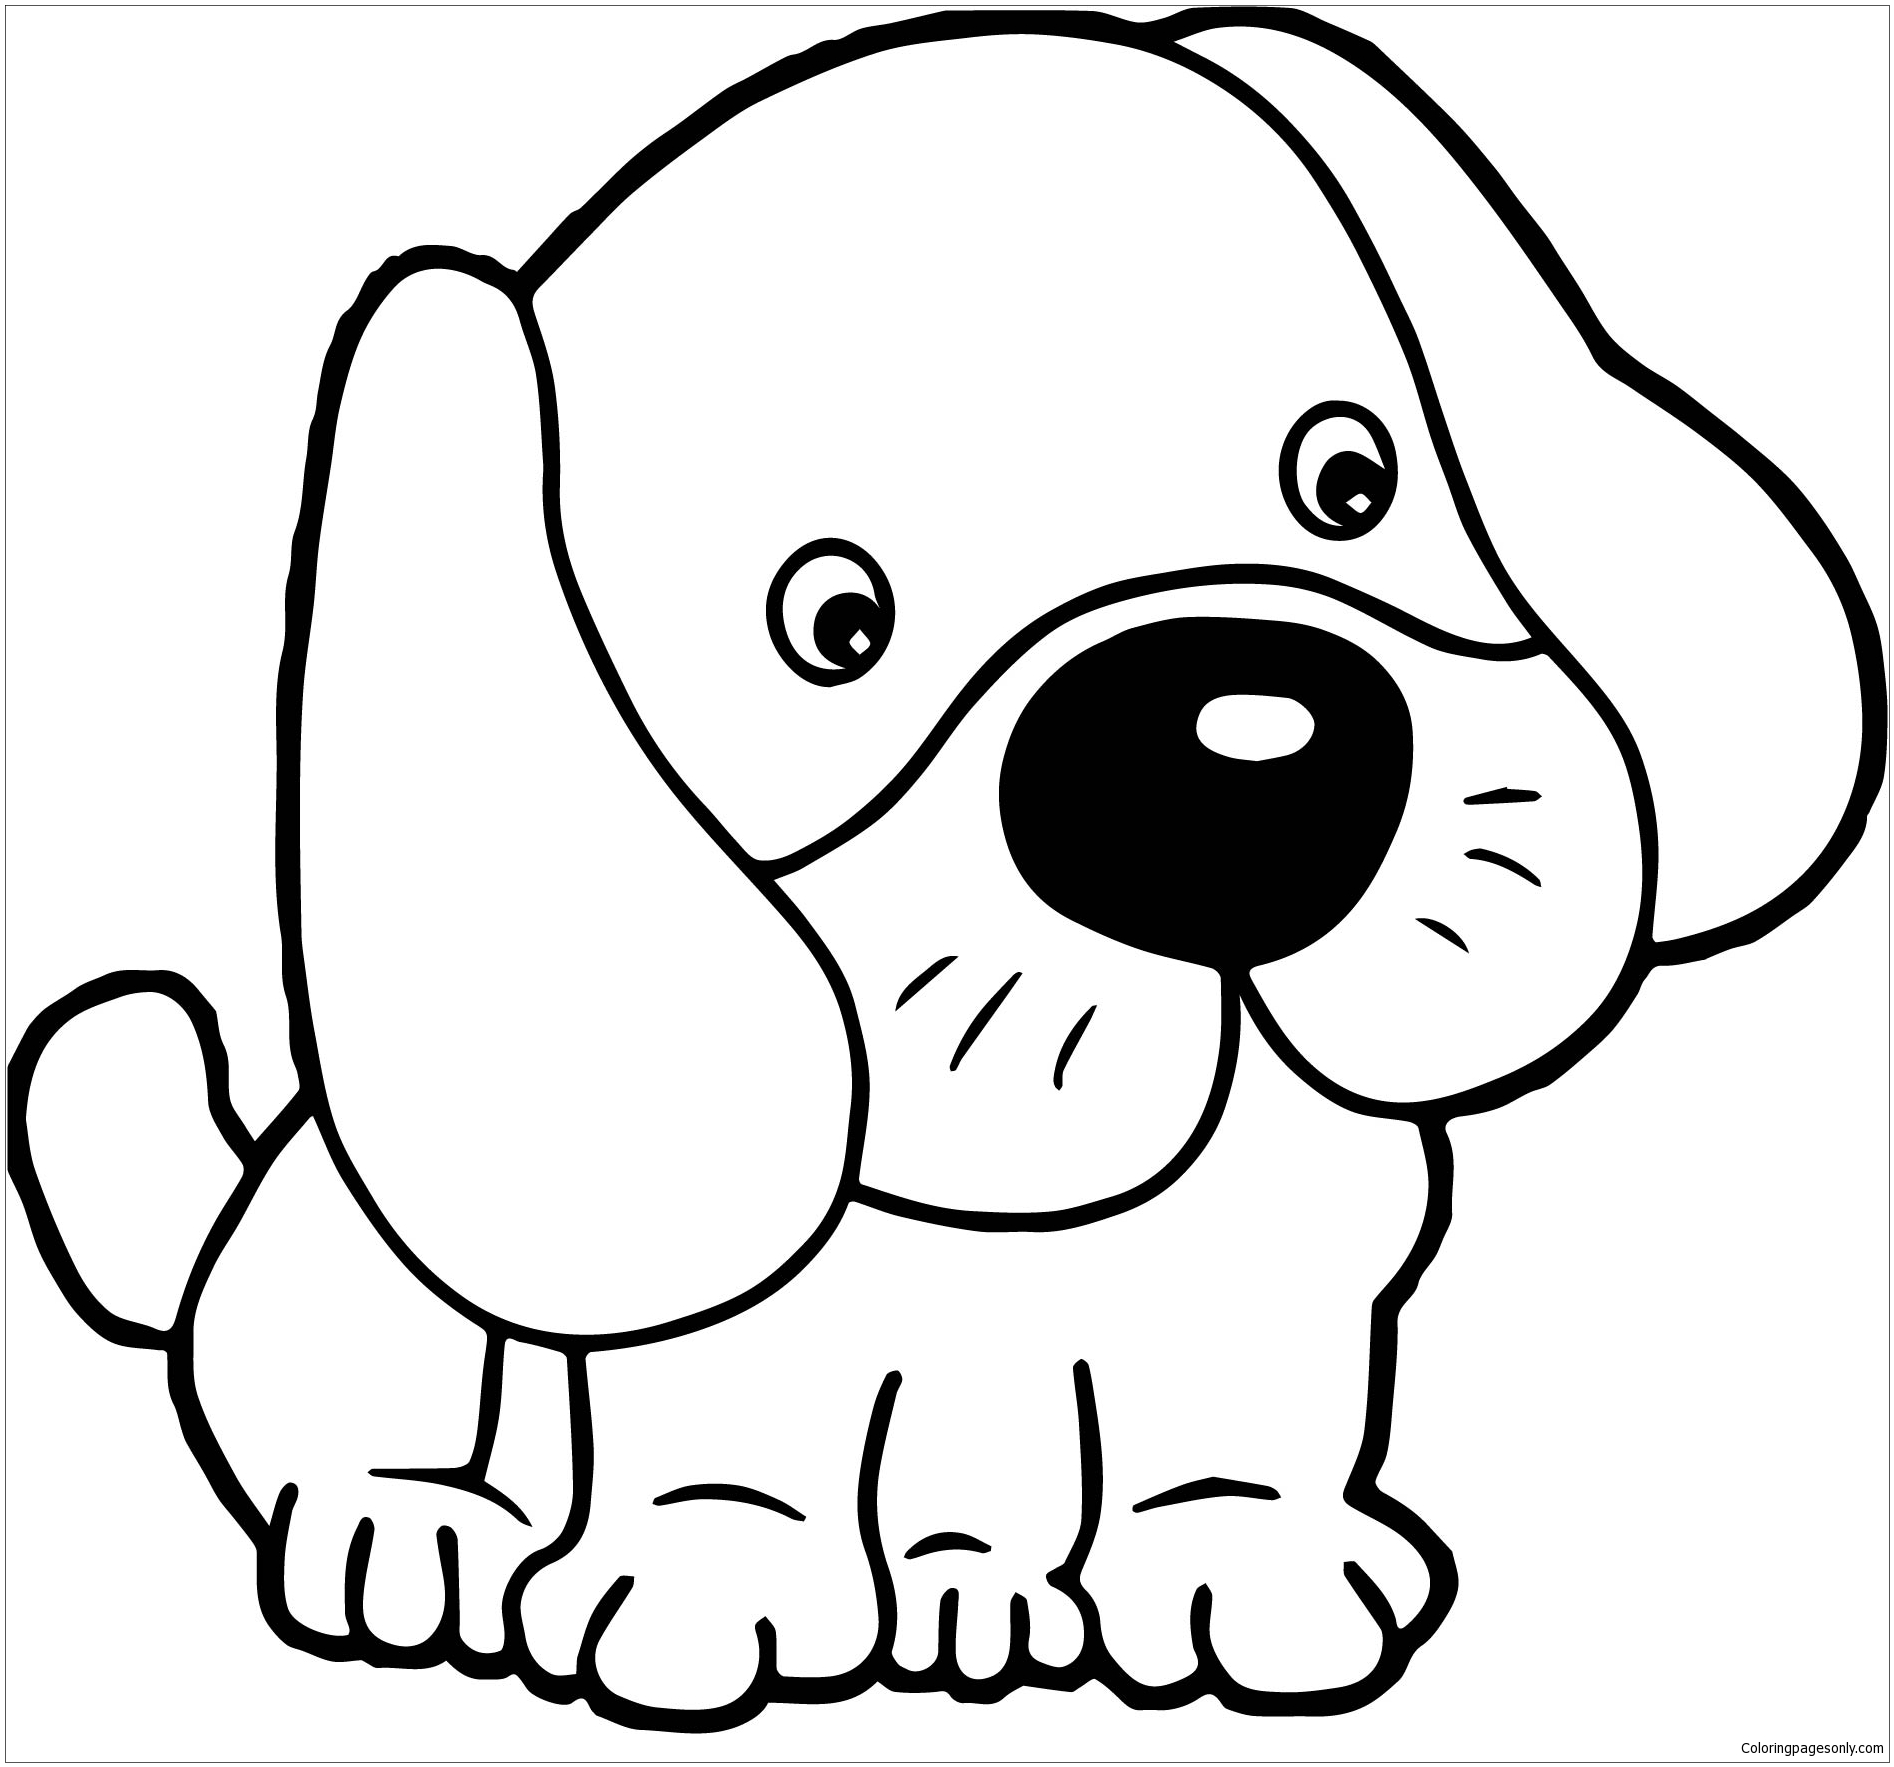 printable cute puppy coloring pages print download draw your own puppy coloring pages pages printable cute puppy coloring